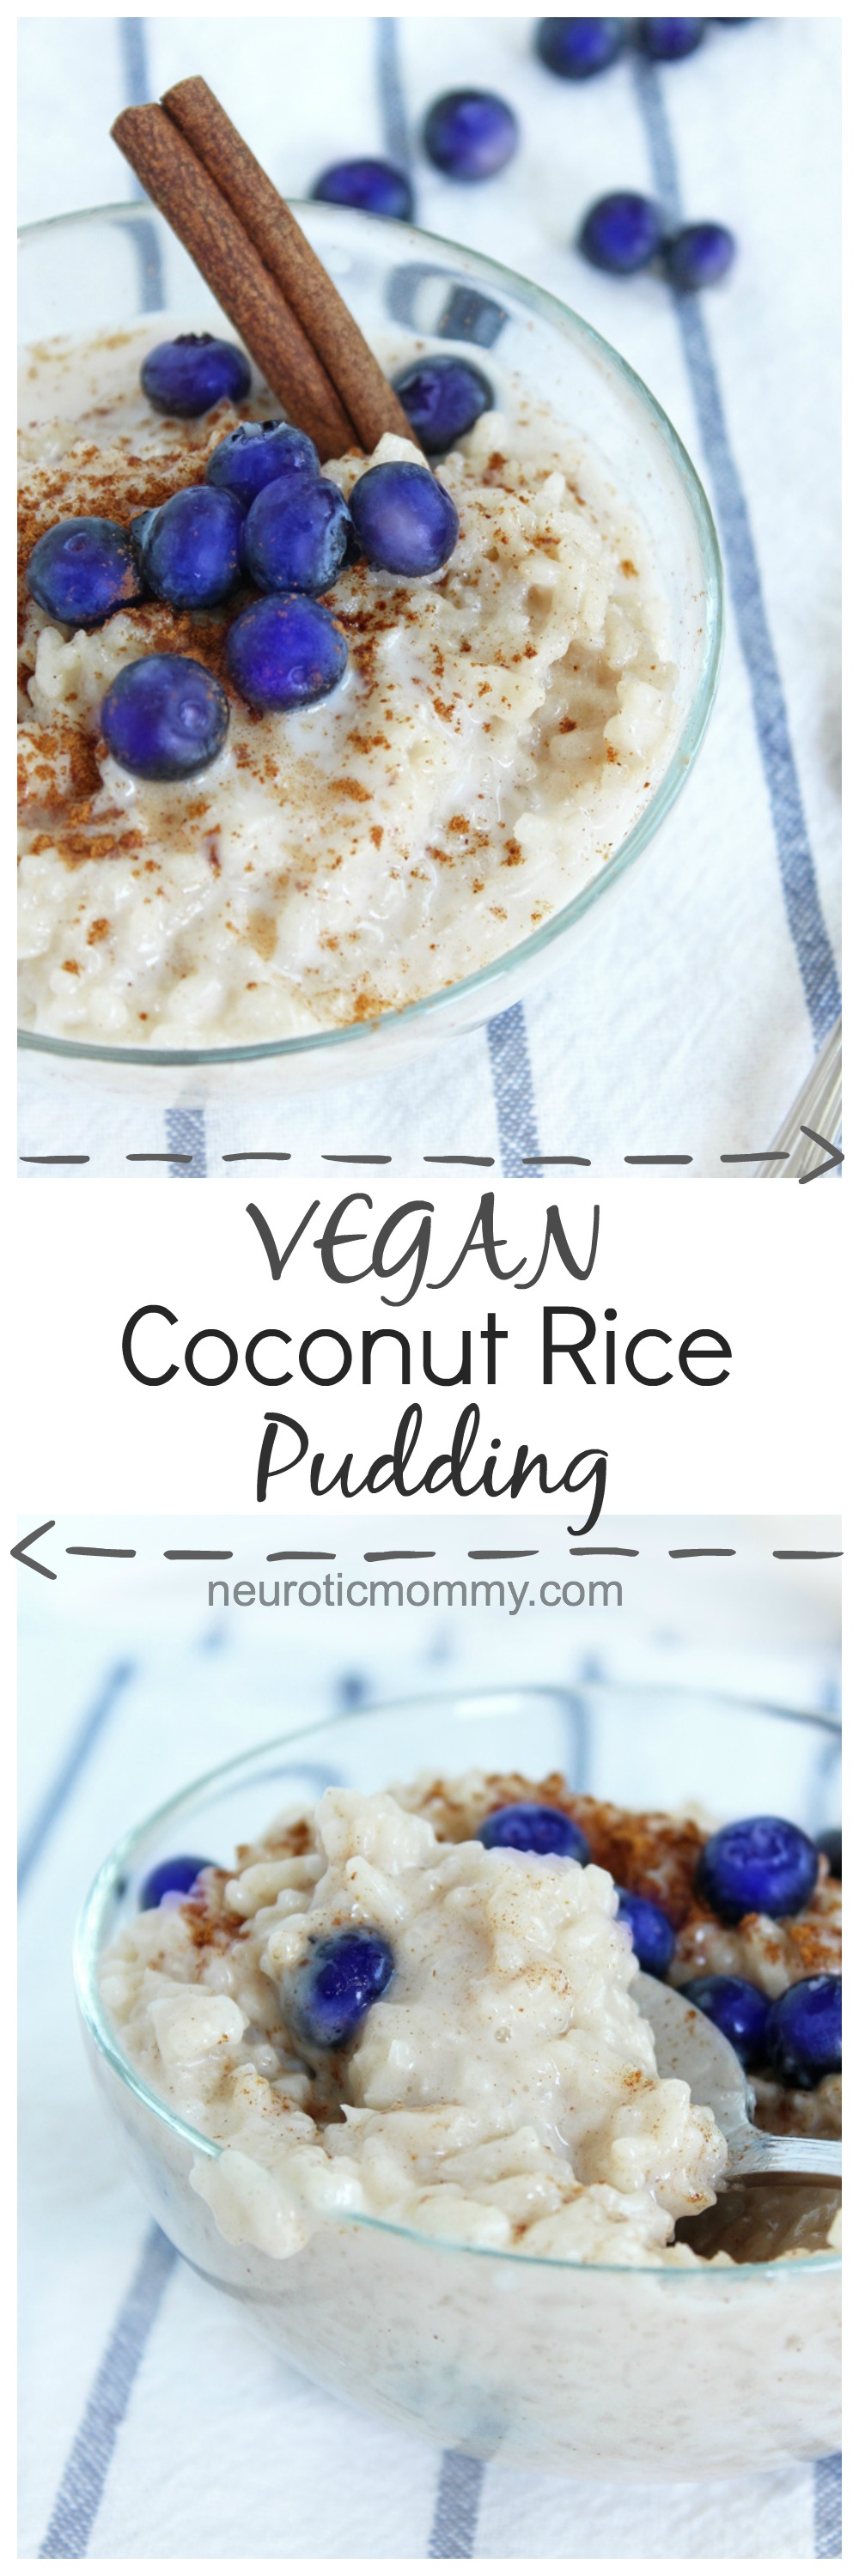 Vegan Coconut Rice Pudding - NeuroticMommy